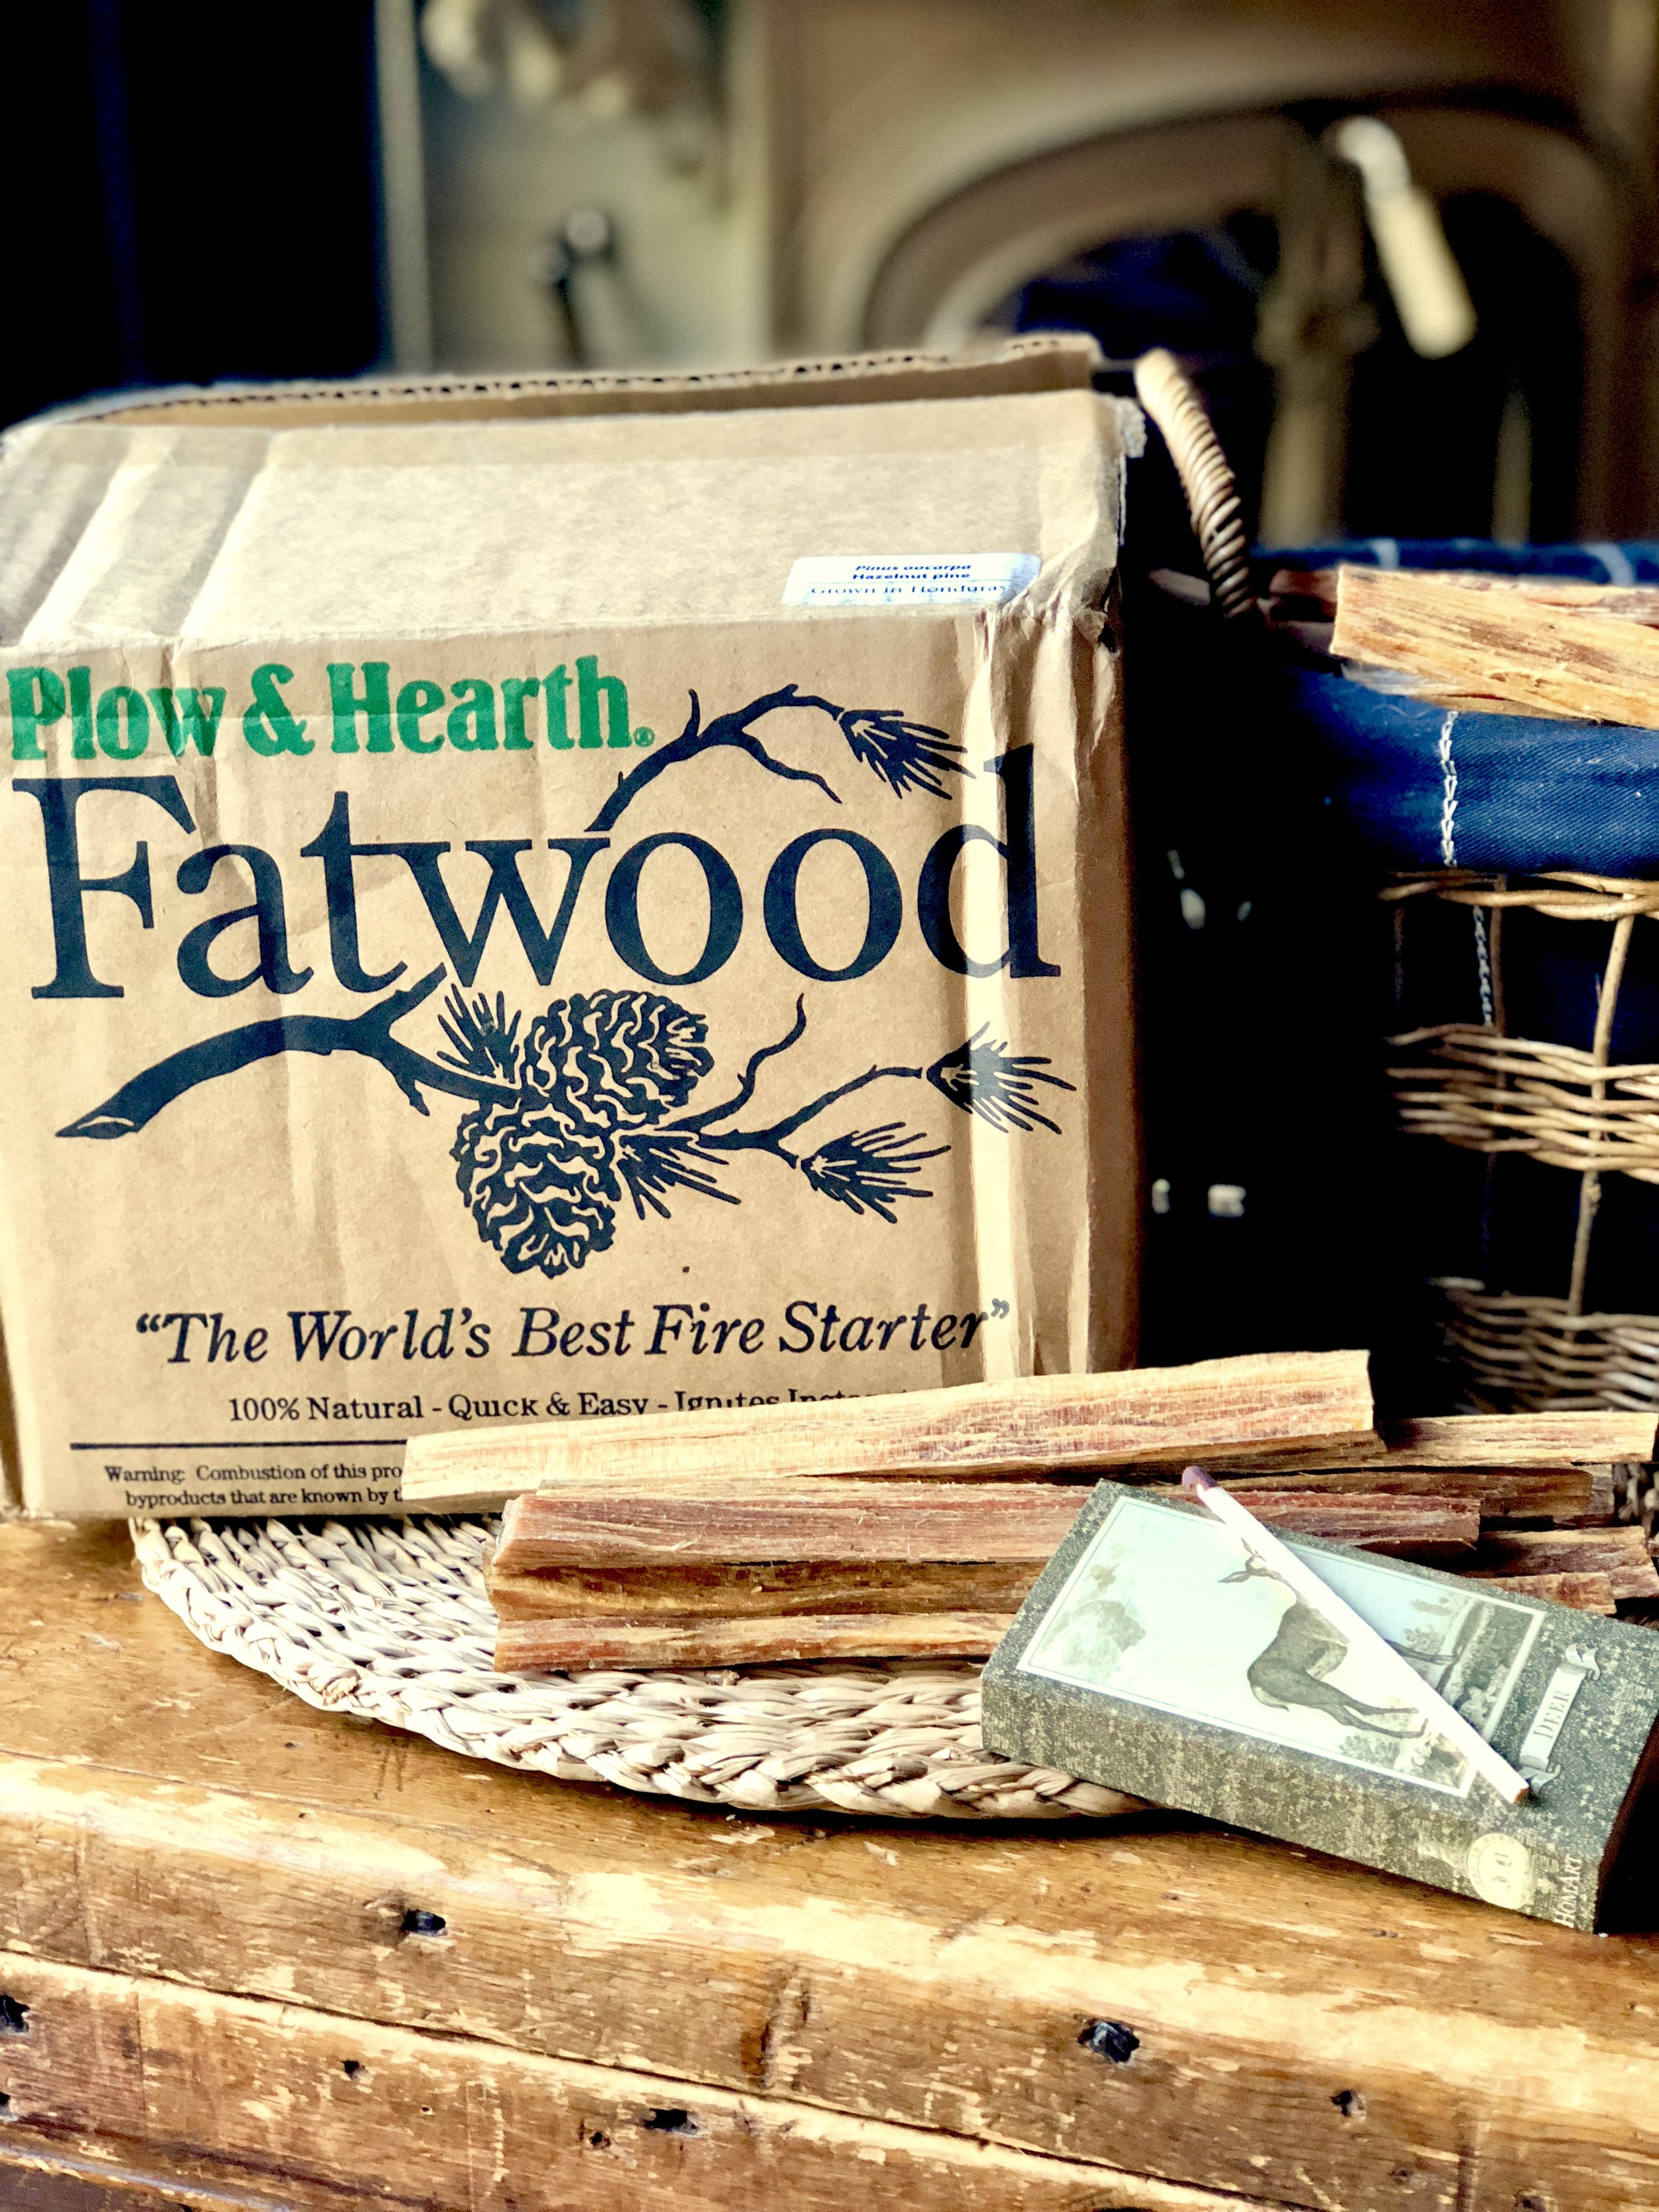 Fatwood by Plow & Hearth